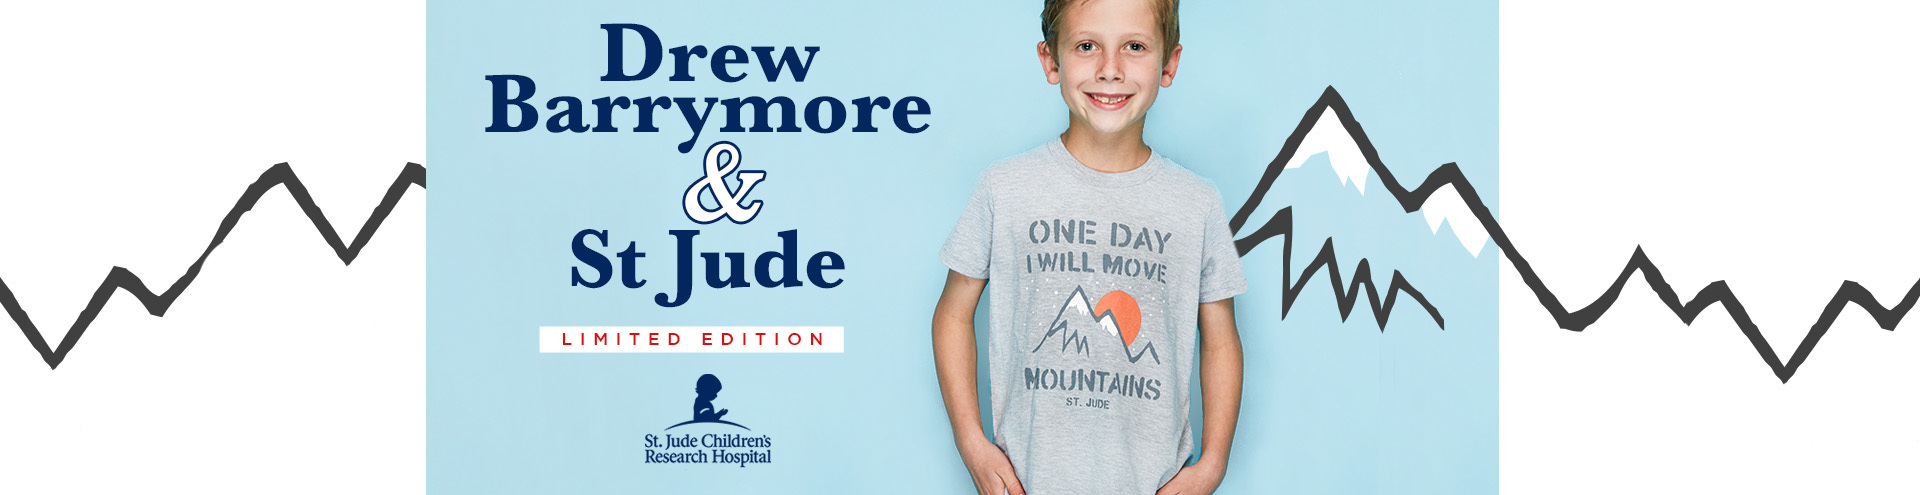 Drew Barrymore x St. Jude Children's Research Hospital Limited Edition Store Store